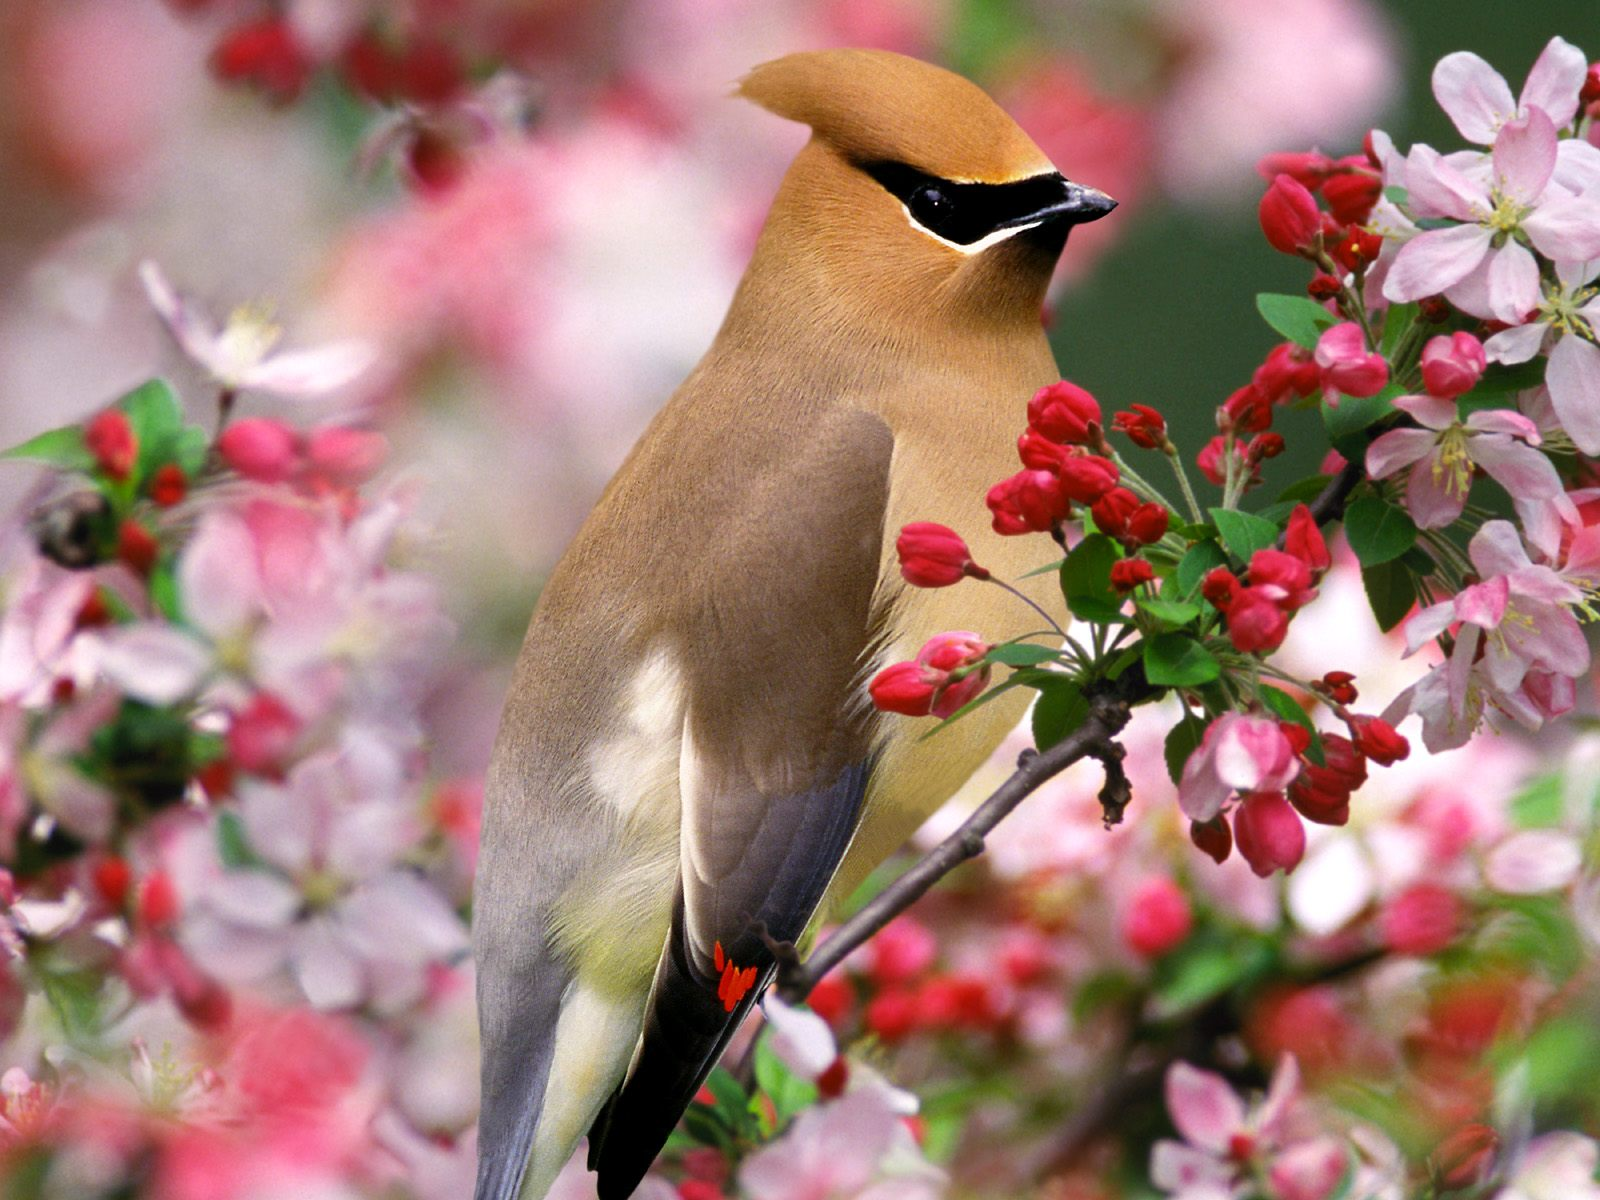 for flower lovers Flowers desktop wallpapers with small birds 1600x1200